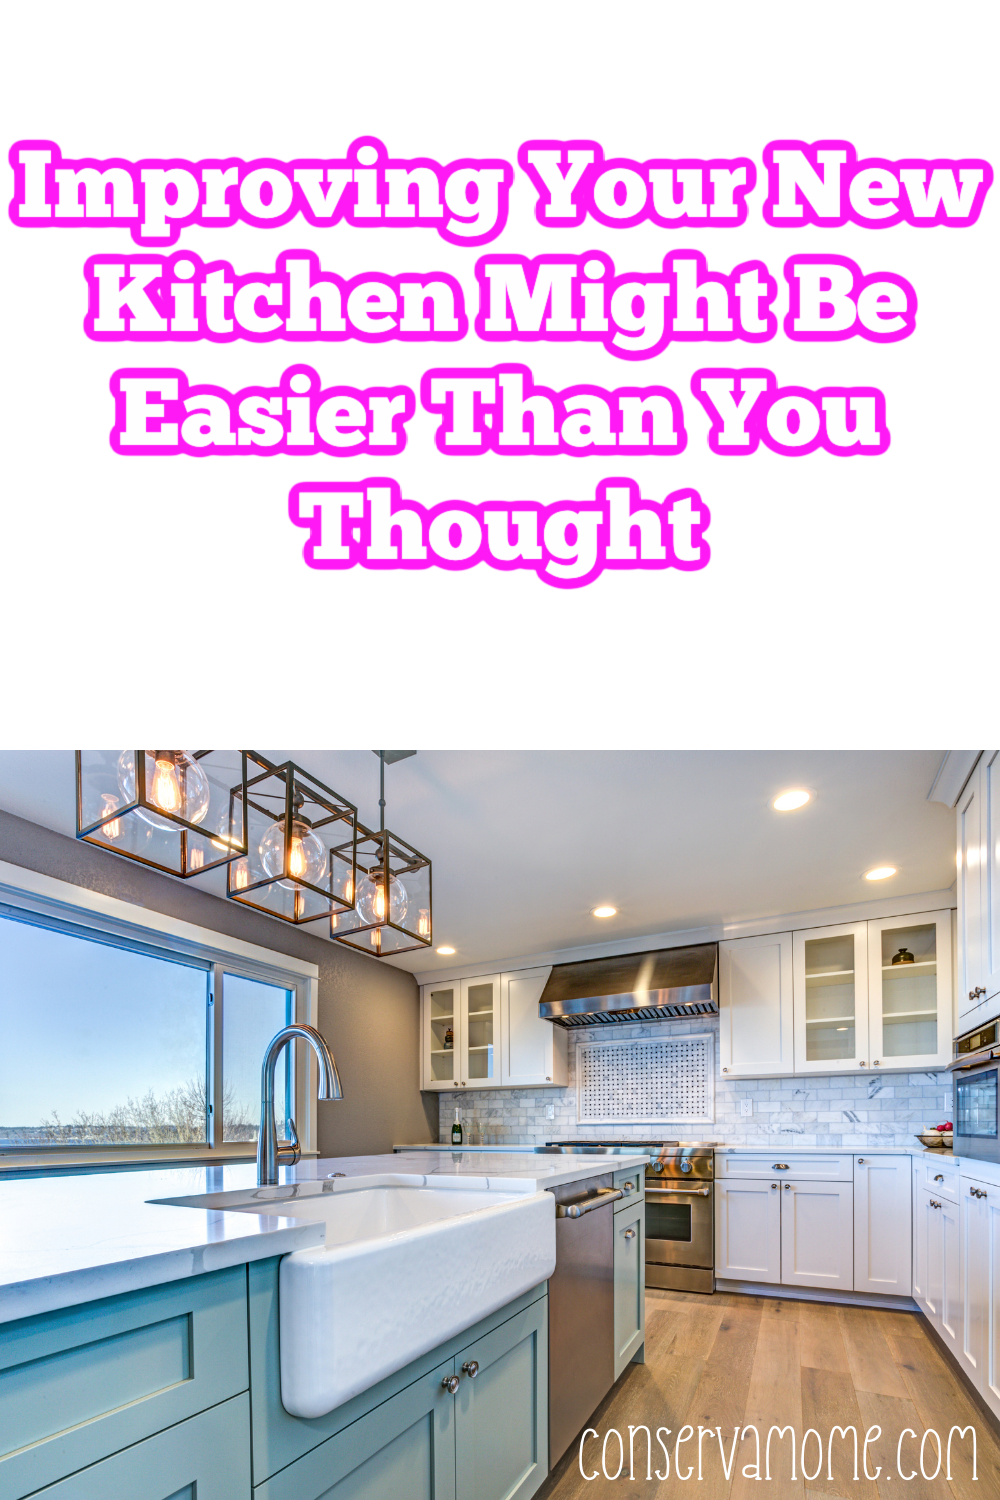 Improving Your New Kitchen Might Be Easier Than You Thought